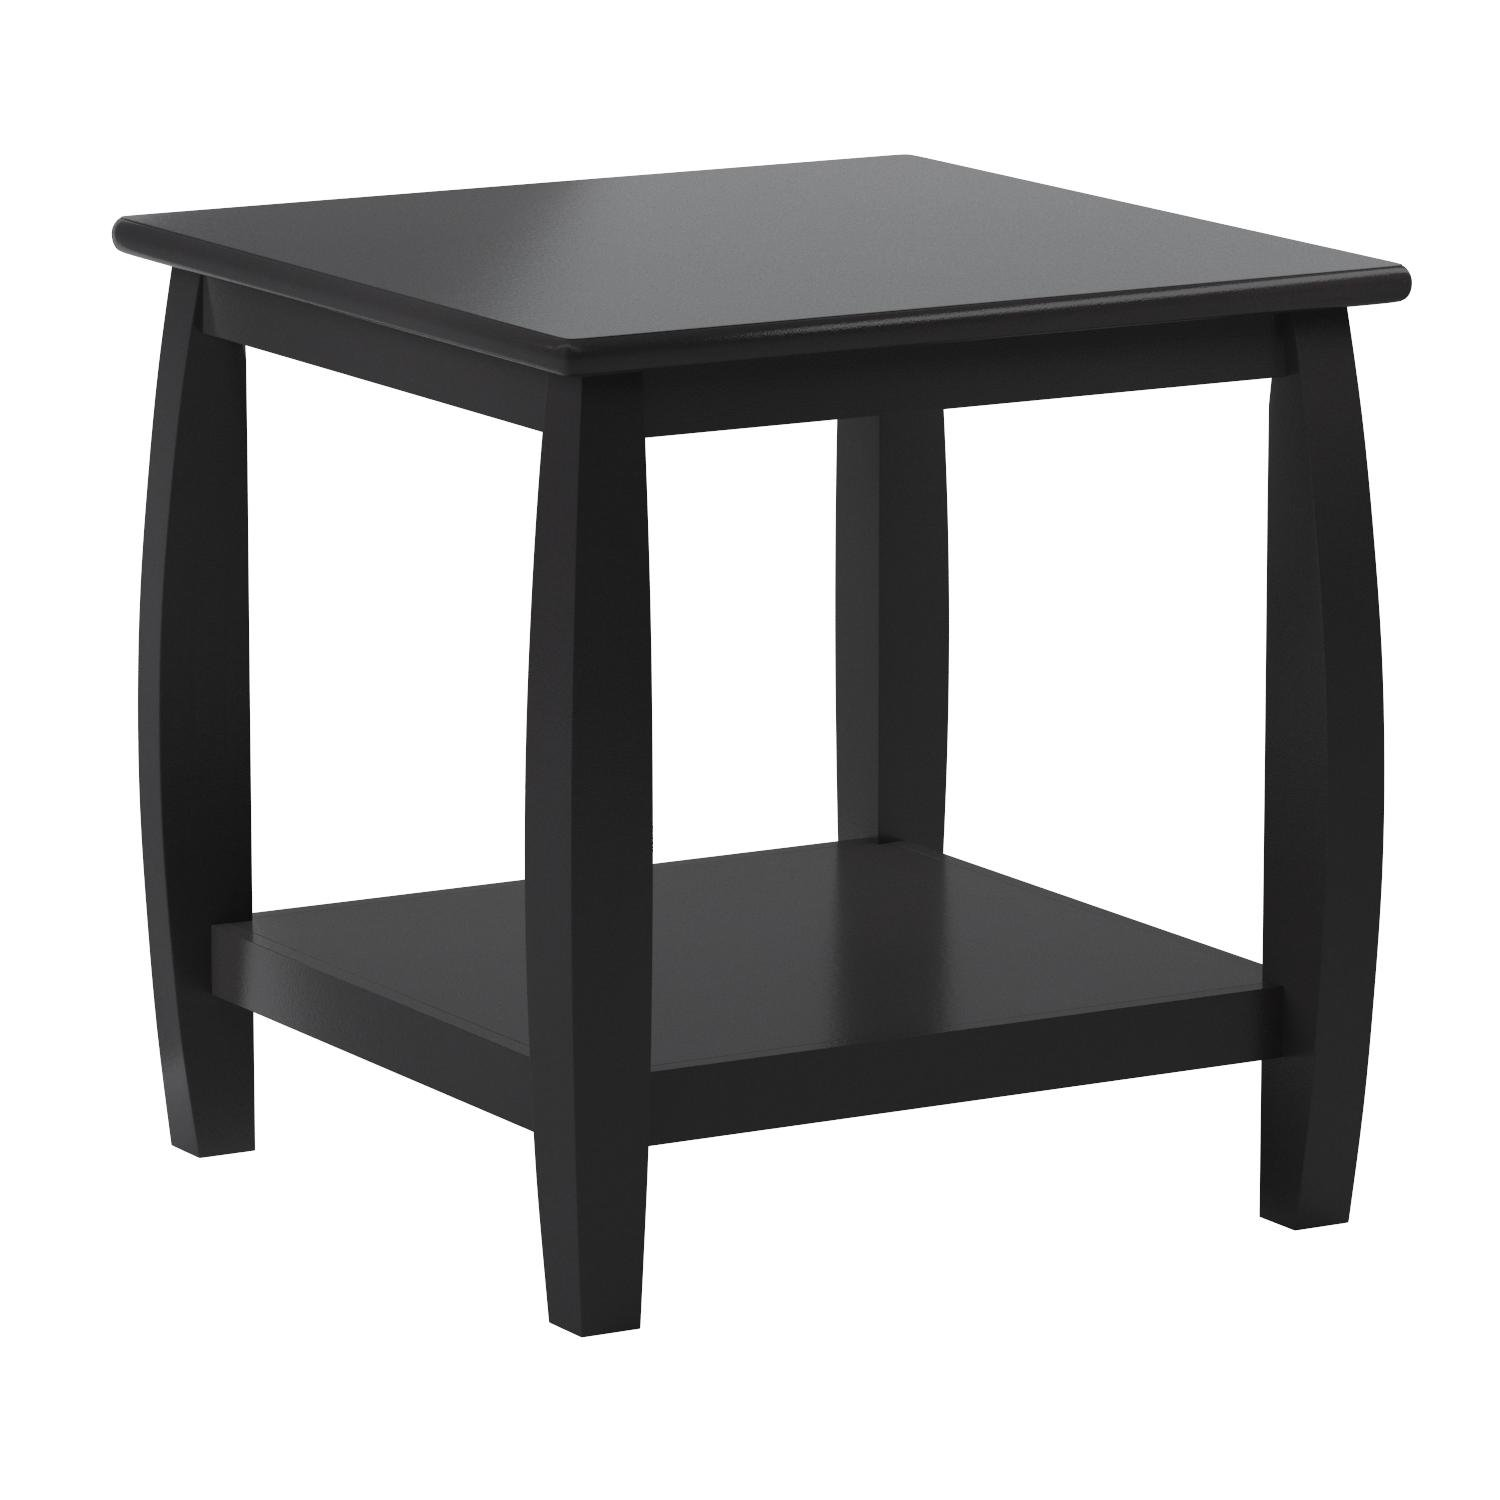 Coaster Wood Top Espresso End Table with Bottom Shelf